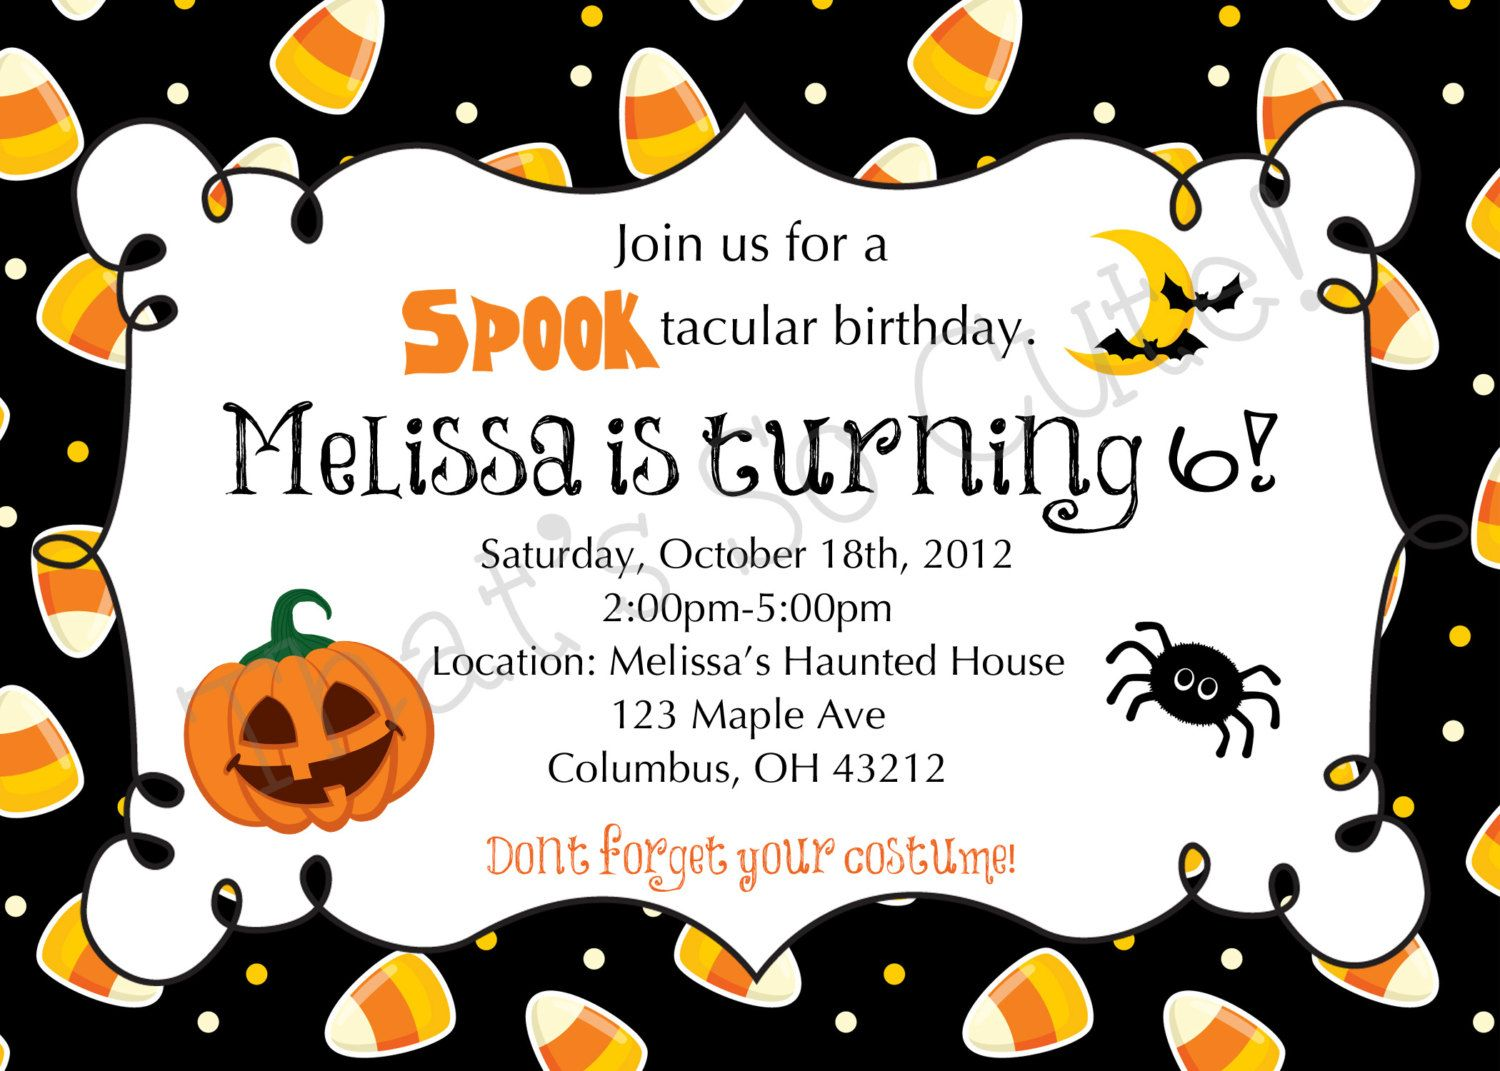 Download Free Template Free Printable Halloween Birthday Party Inv Birthday Halloween Party Halloween Birthday Invitations Halloween Birthday Party Invitations